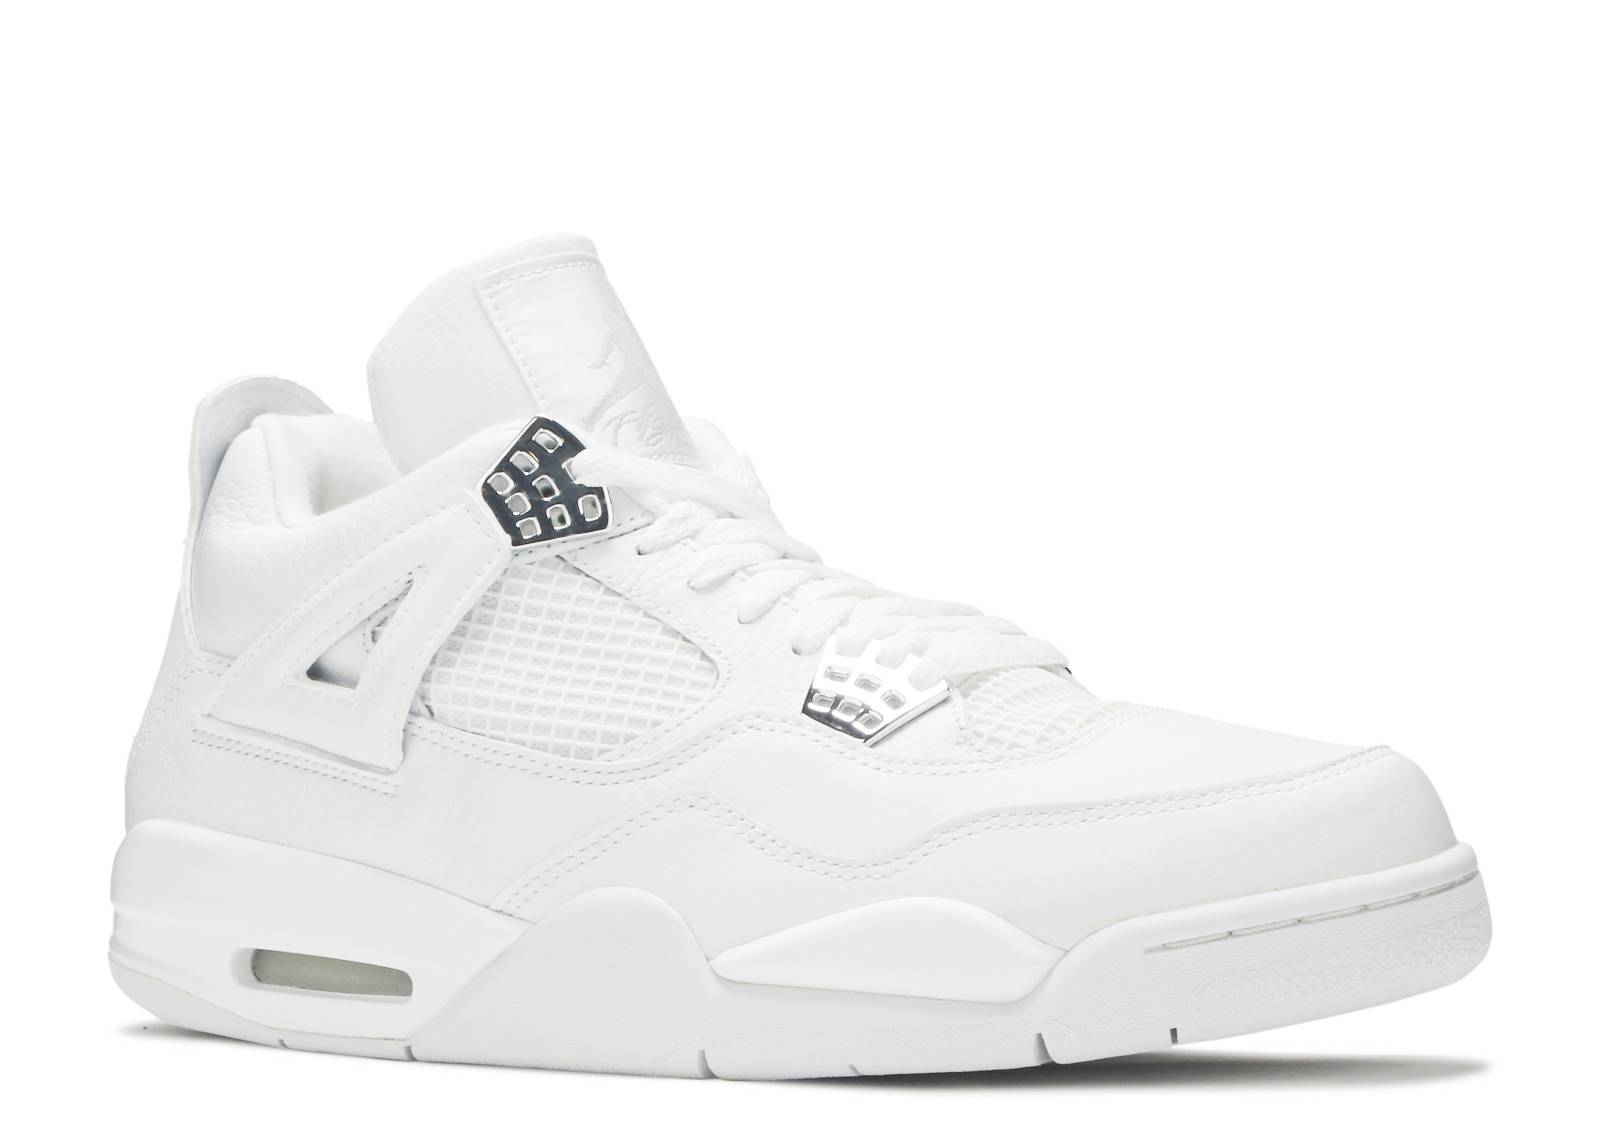 ... White Cement 2016 Retro Air Jordan 4 Retro ... 49a8e8baa73